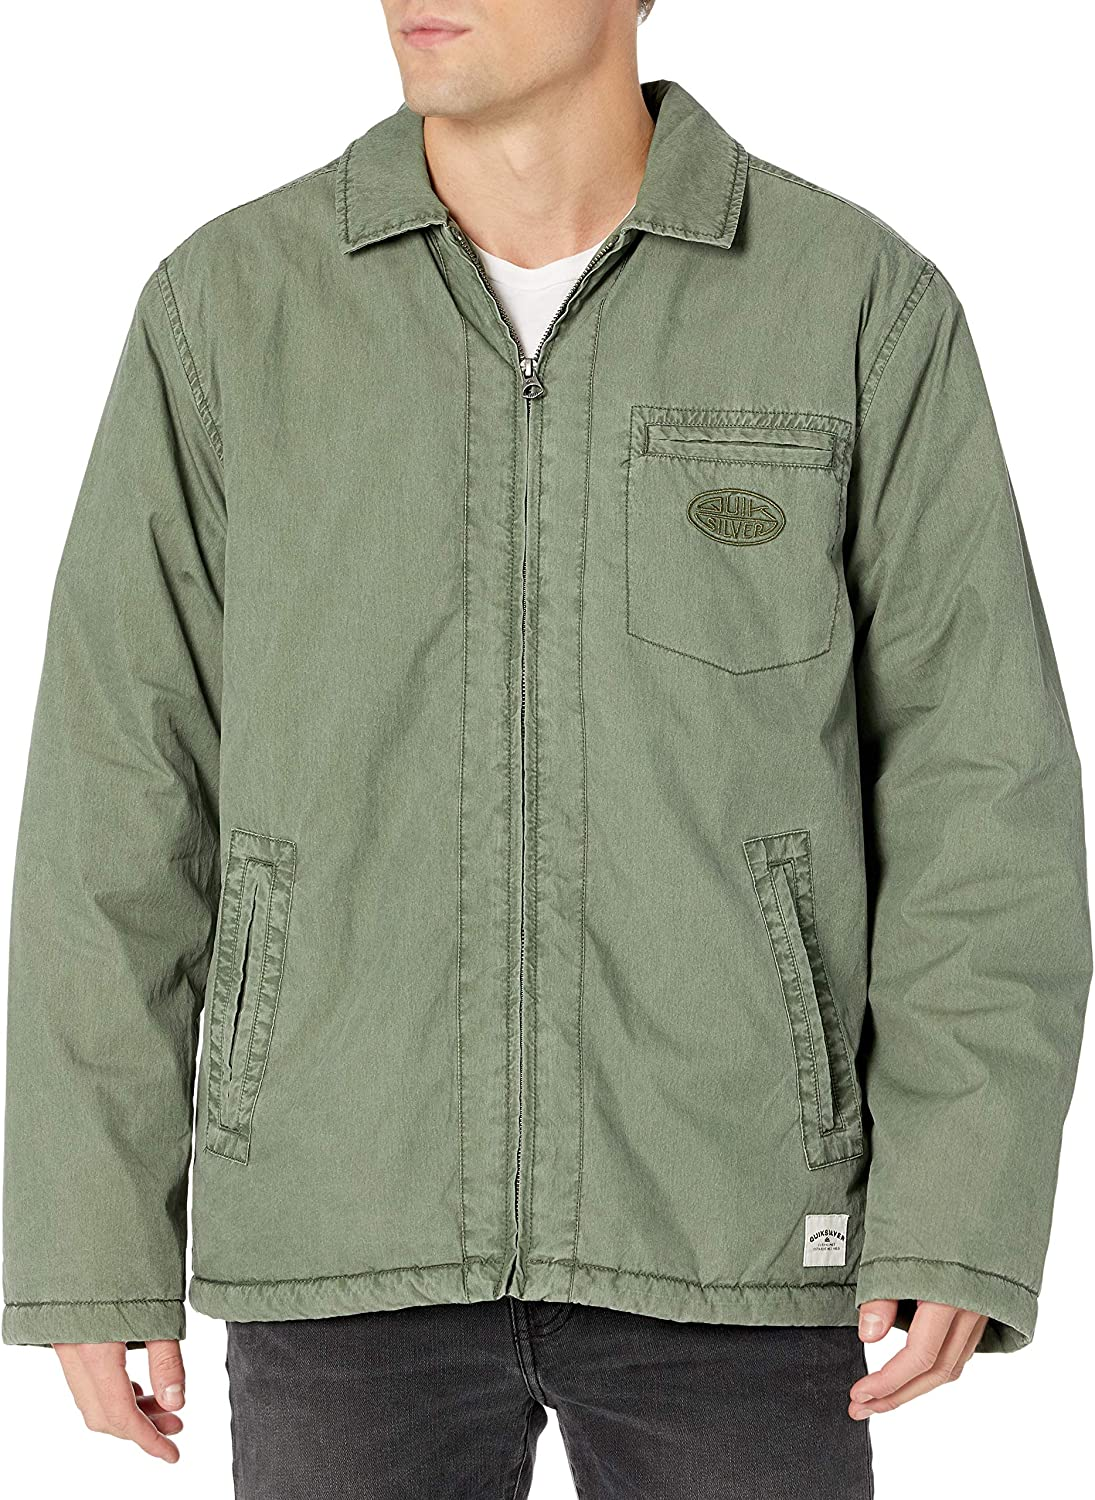 Quiksilver Men's The Unleashed Jacket: Clothing